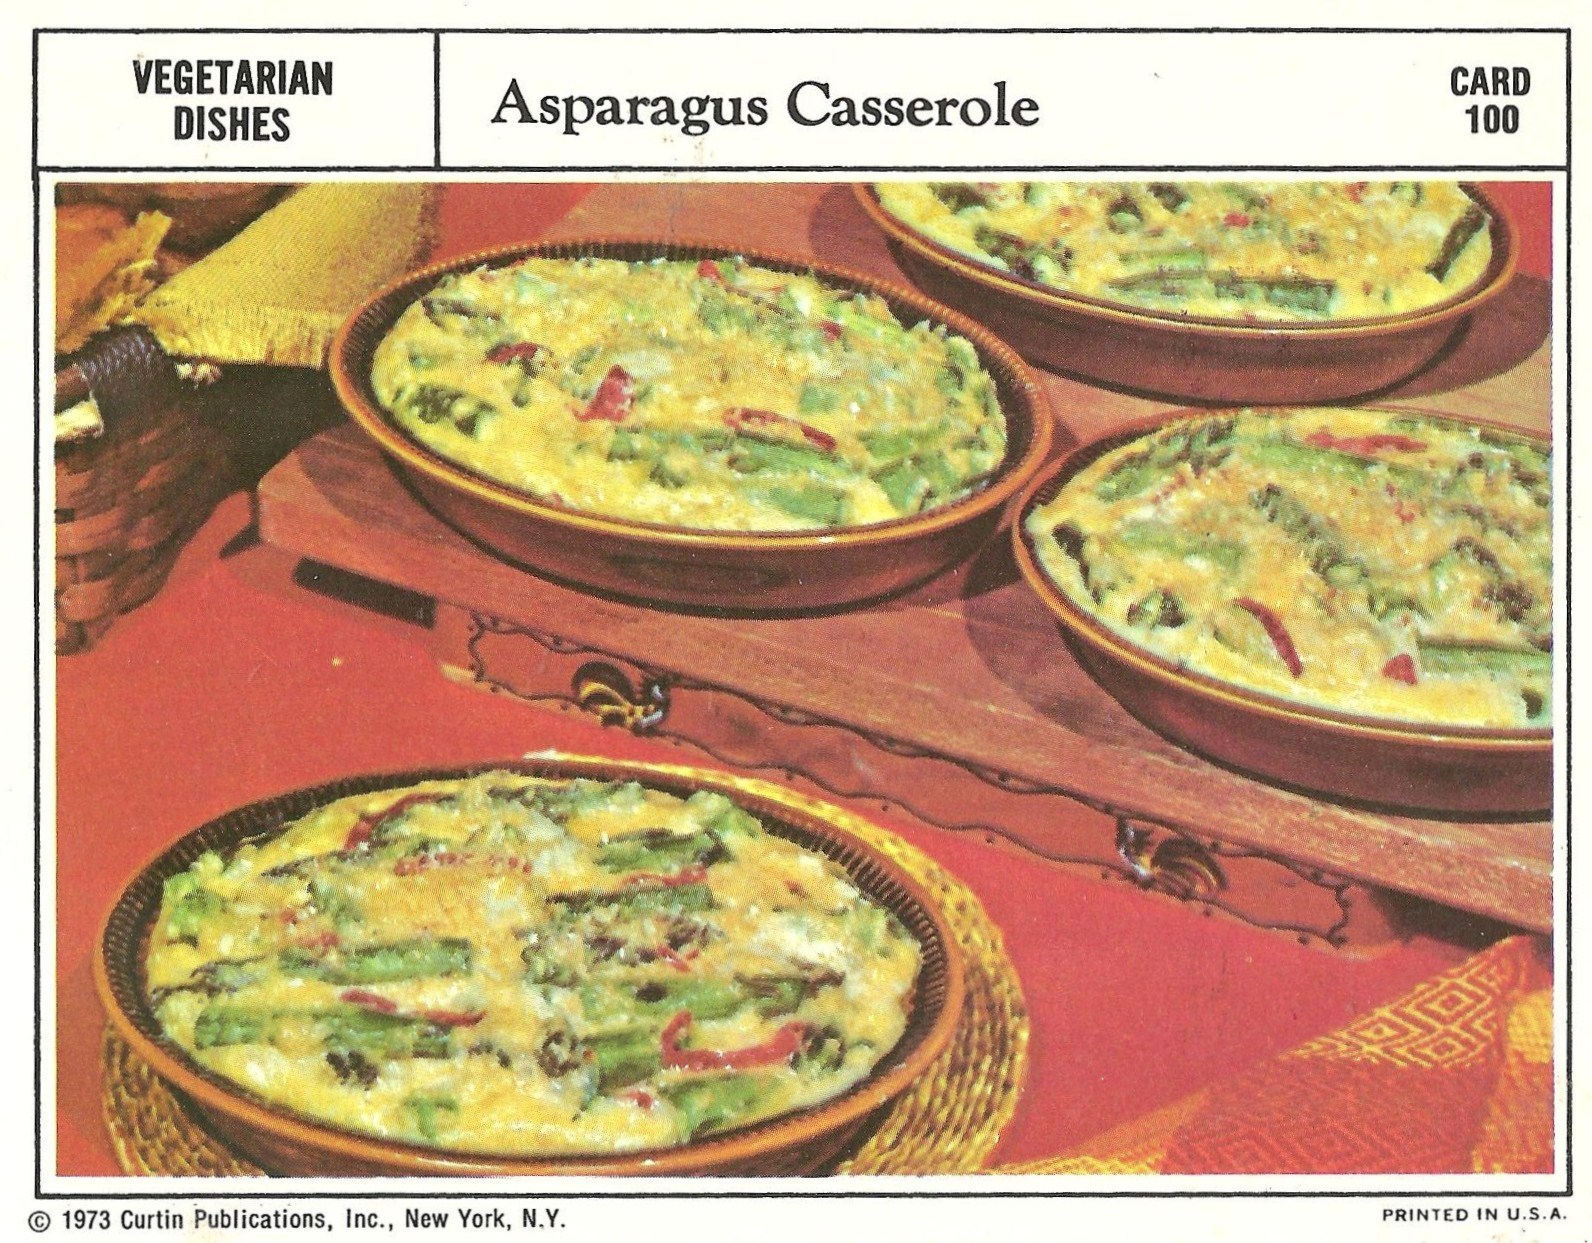 Bad and ugly of retro food the epitome of 1970s food recipe cards a casserole full of asparagus and cheese and other unmentionables one must really have respect for the body chemistry altering properties of asparagus to forumfinder Gallery